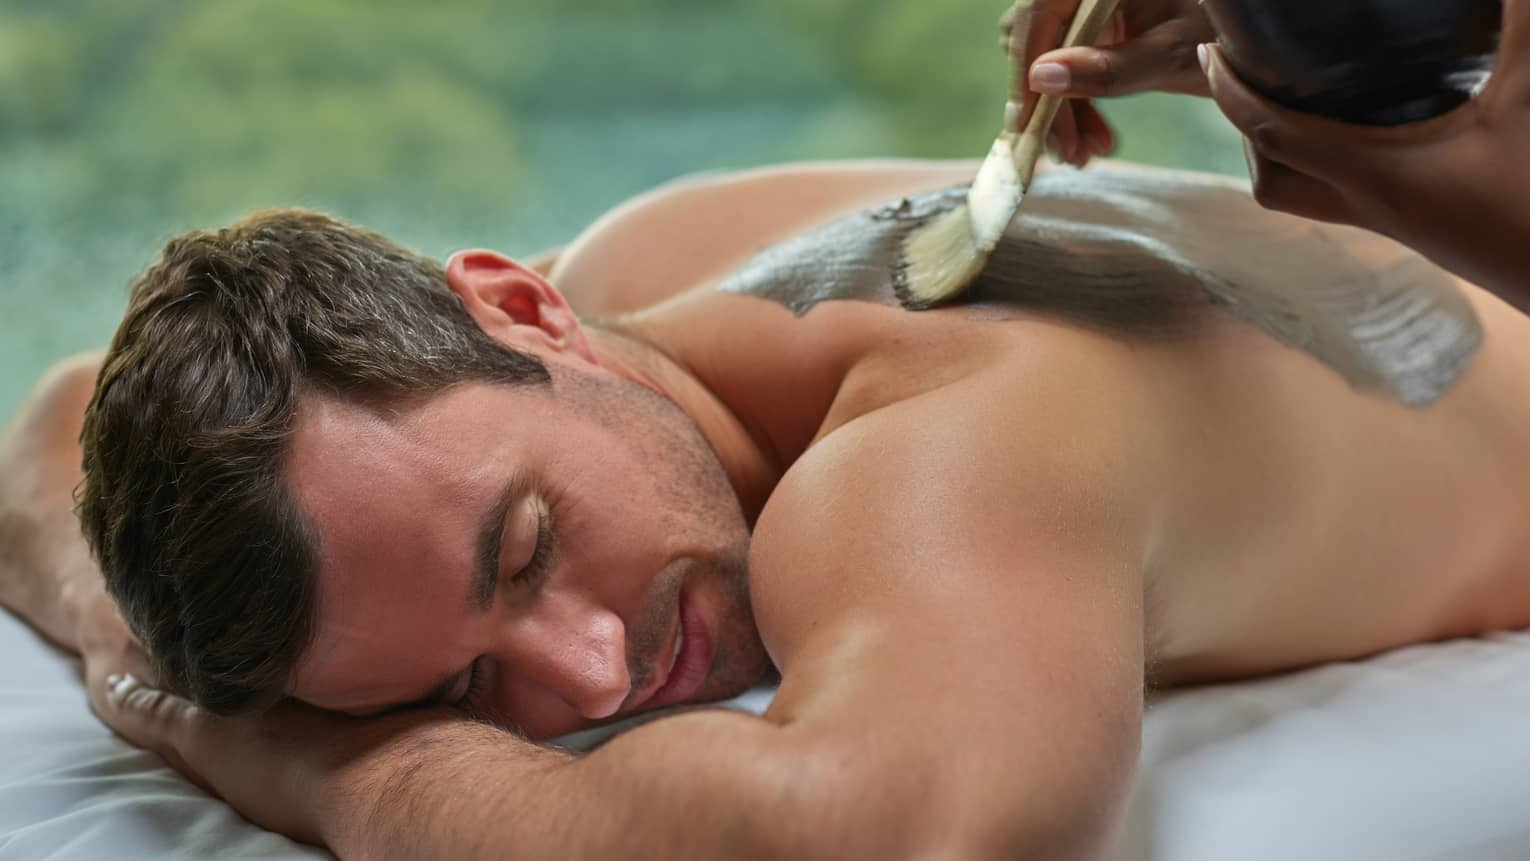 Smiling man lies on spa table as staff paint clay mask on bare back